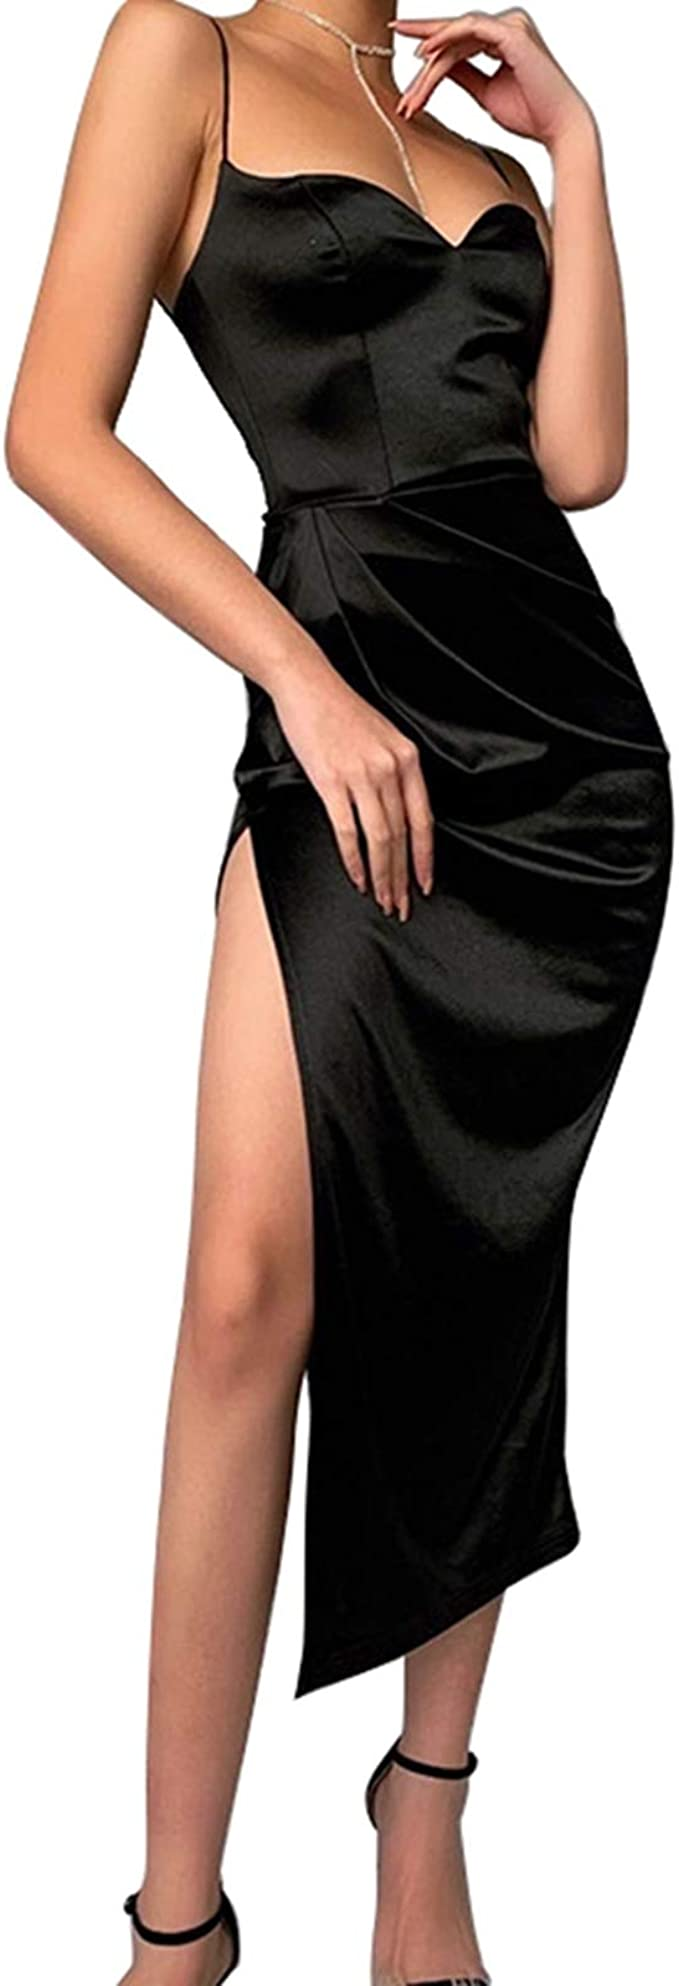 Cheap 2015 Homecoming Dresses Under 100 High Neck Sexy